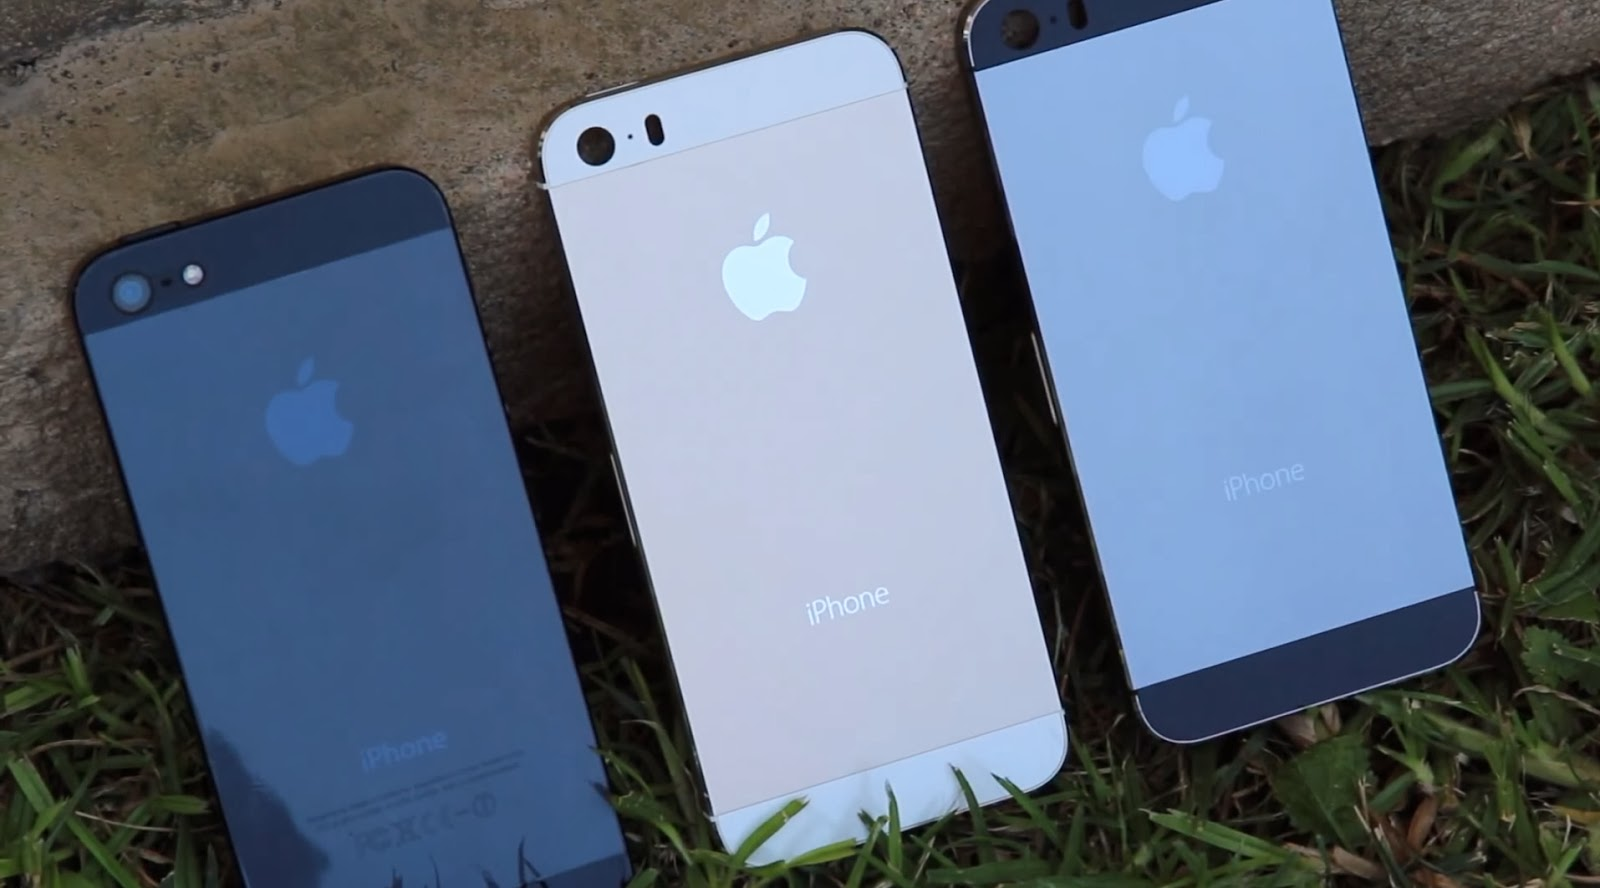 Iphone 5s And 5c Debut In India Reliance Offering It For Free Se 16 Gb Grey The Users Are Going To Get 16gb A Zero Upfront Payment Place They Will Have Pay Around Rs 2500 2800 Per Month